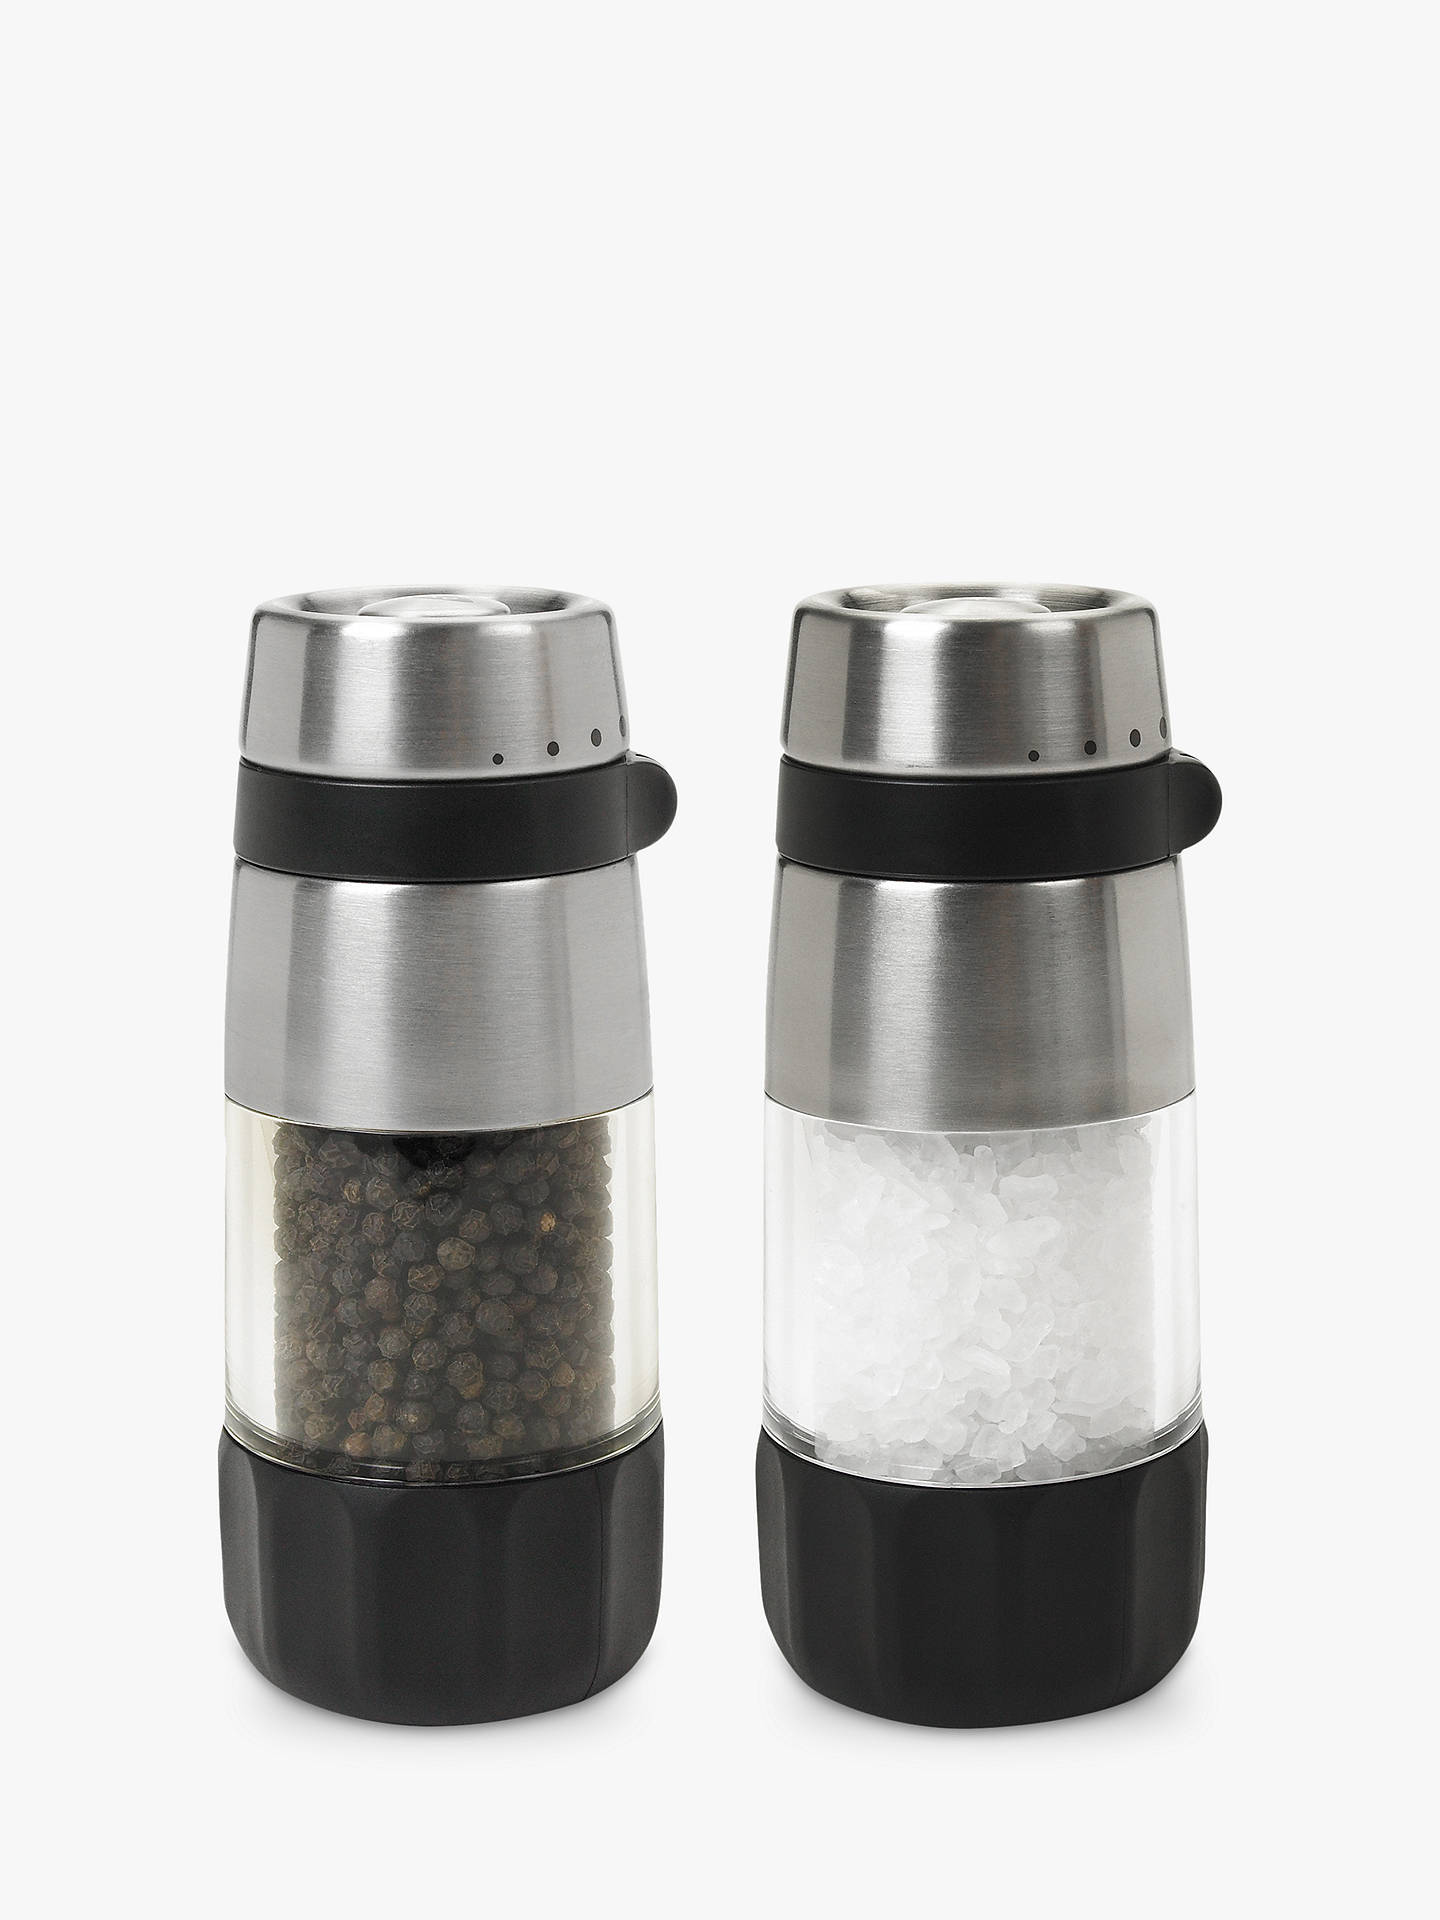 Buy OXO Good Grips Salt and Pepper Mill Grinders, Set of 2 Online at johnlewis.com